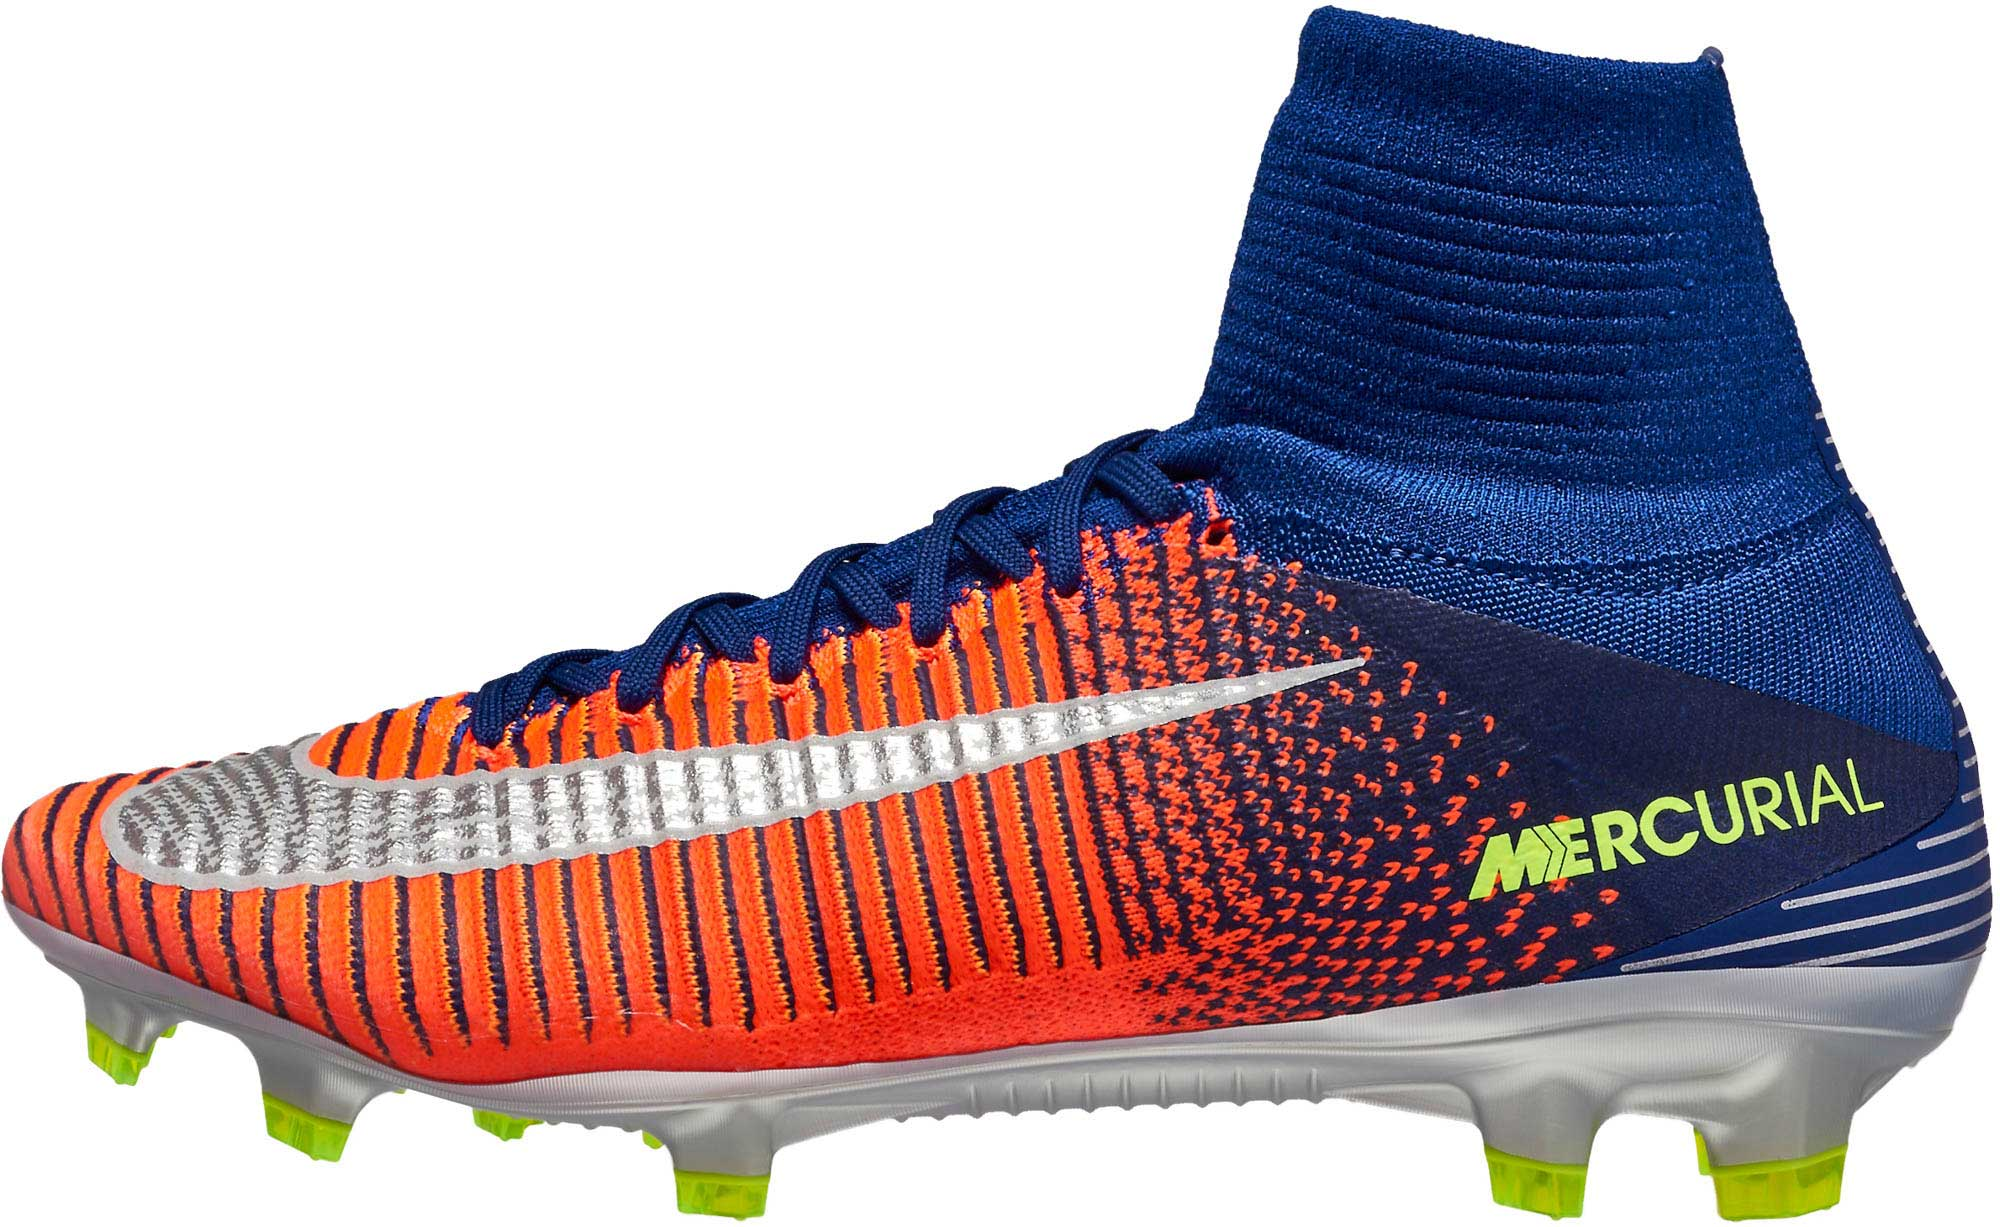 5960992b7 Nike Mercurial Superfly V FG Cleats - Blue Superfly V